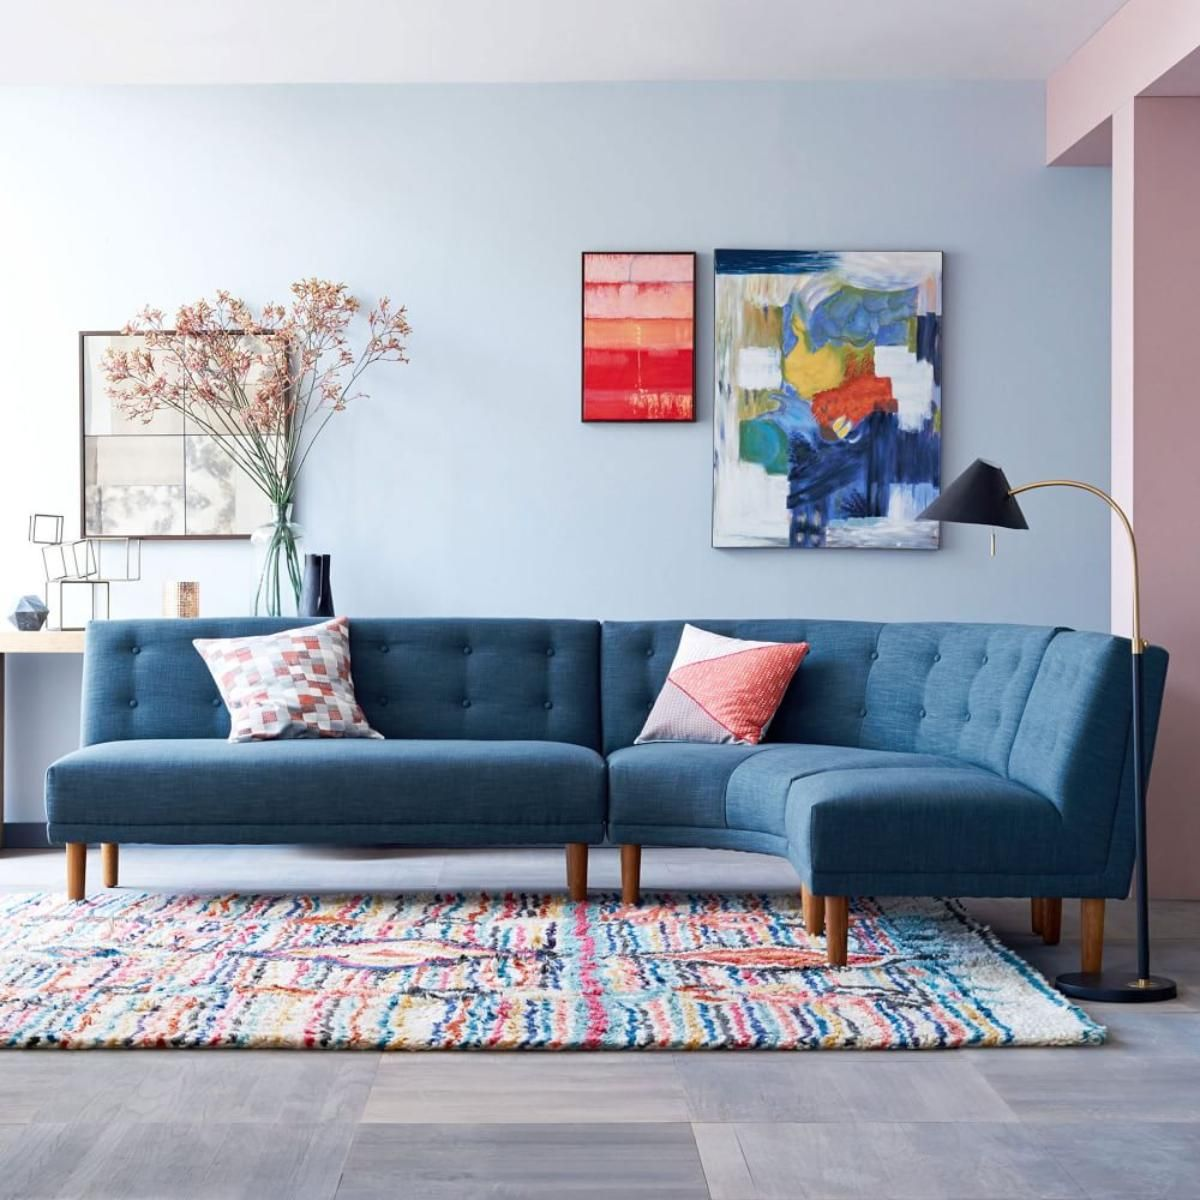 Curved Sofas Living Room: Colourful Living Room With Curved Sofa